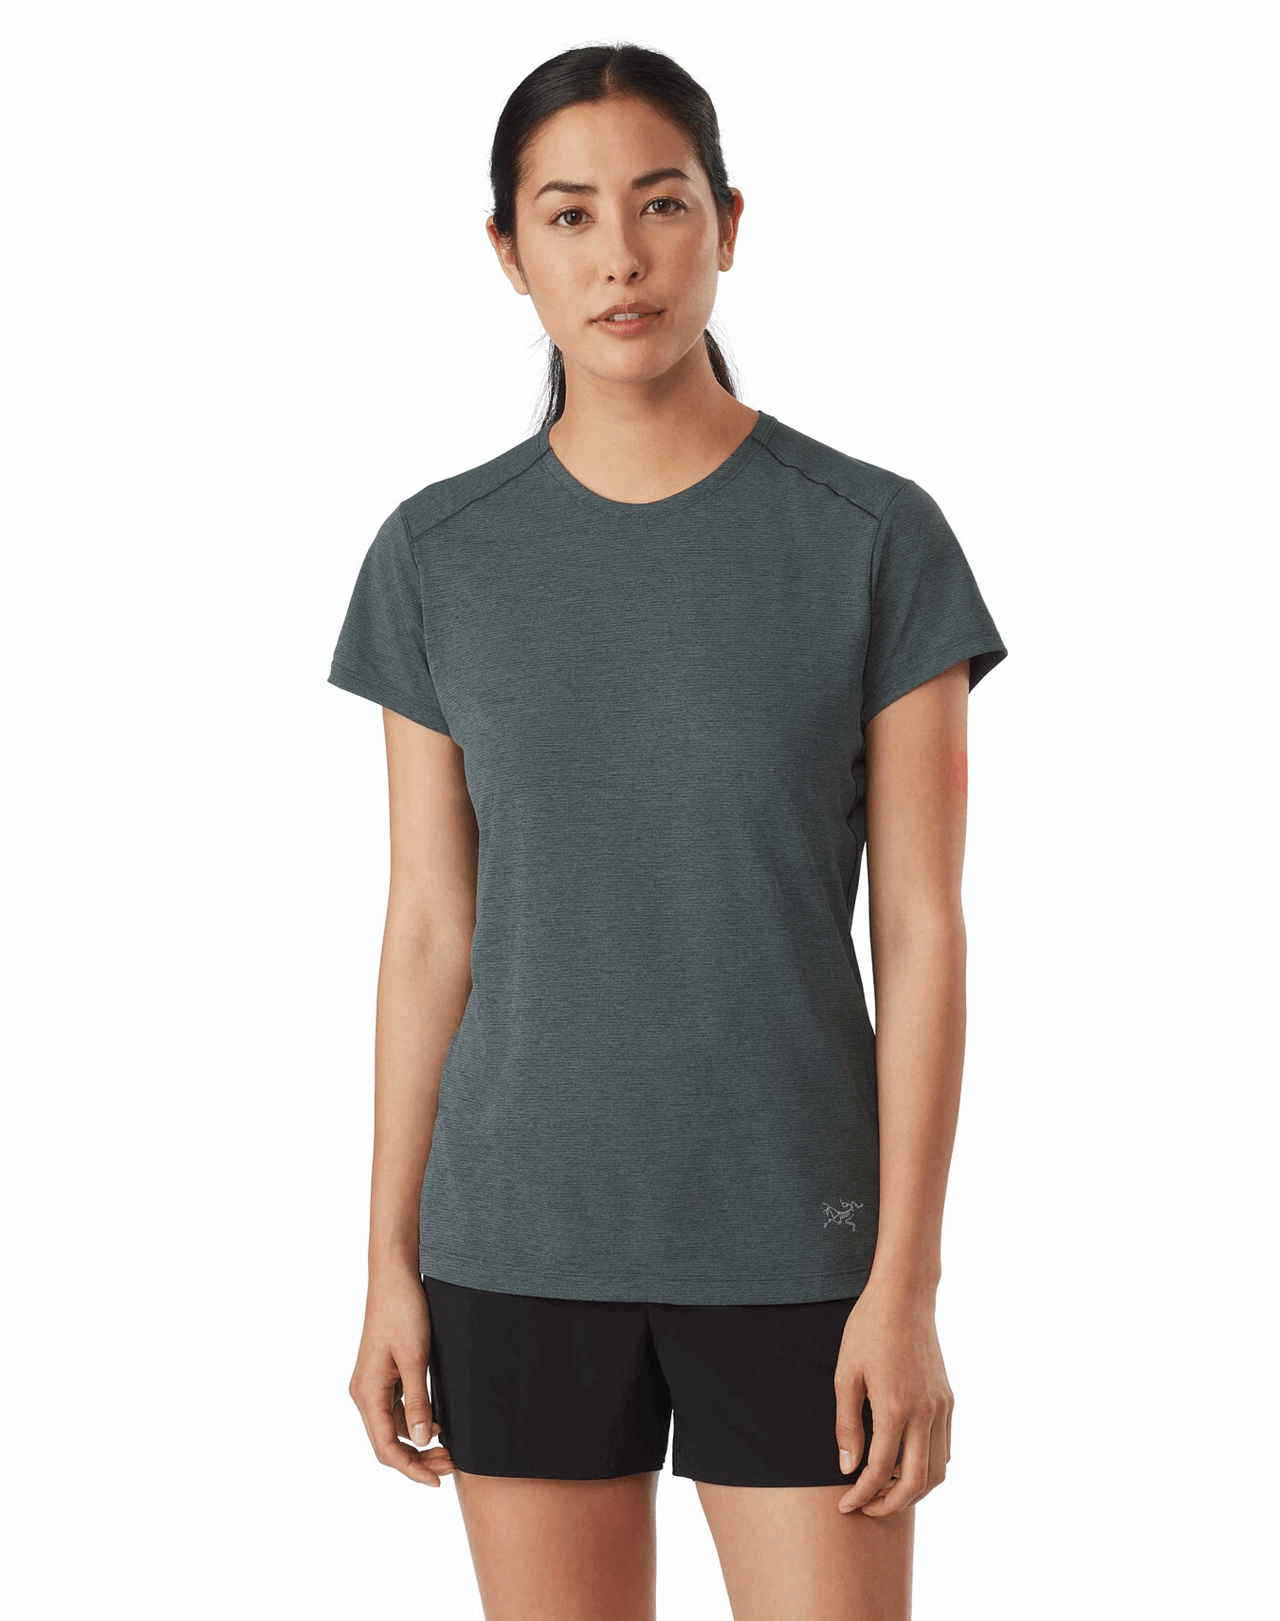 Arc'Teryx 始祖鳥 短袖排汗衣/登山衣 QUADRA CREW NECK SHIRT